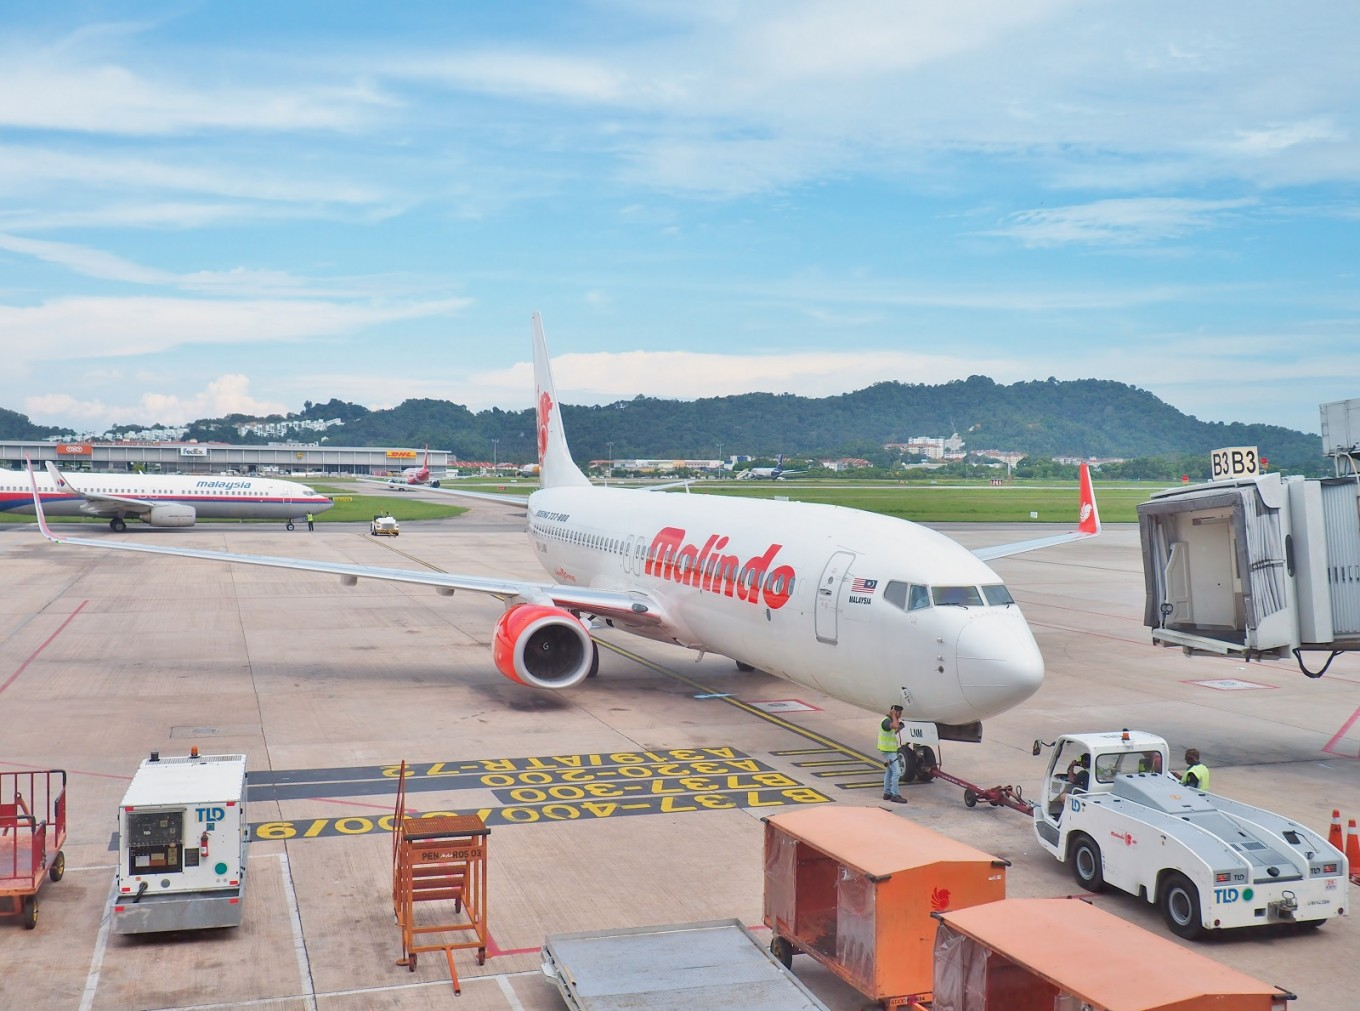 70% of Malindo Air staff to take unpaid leave